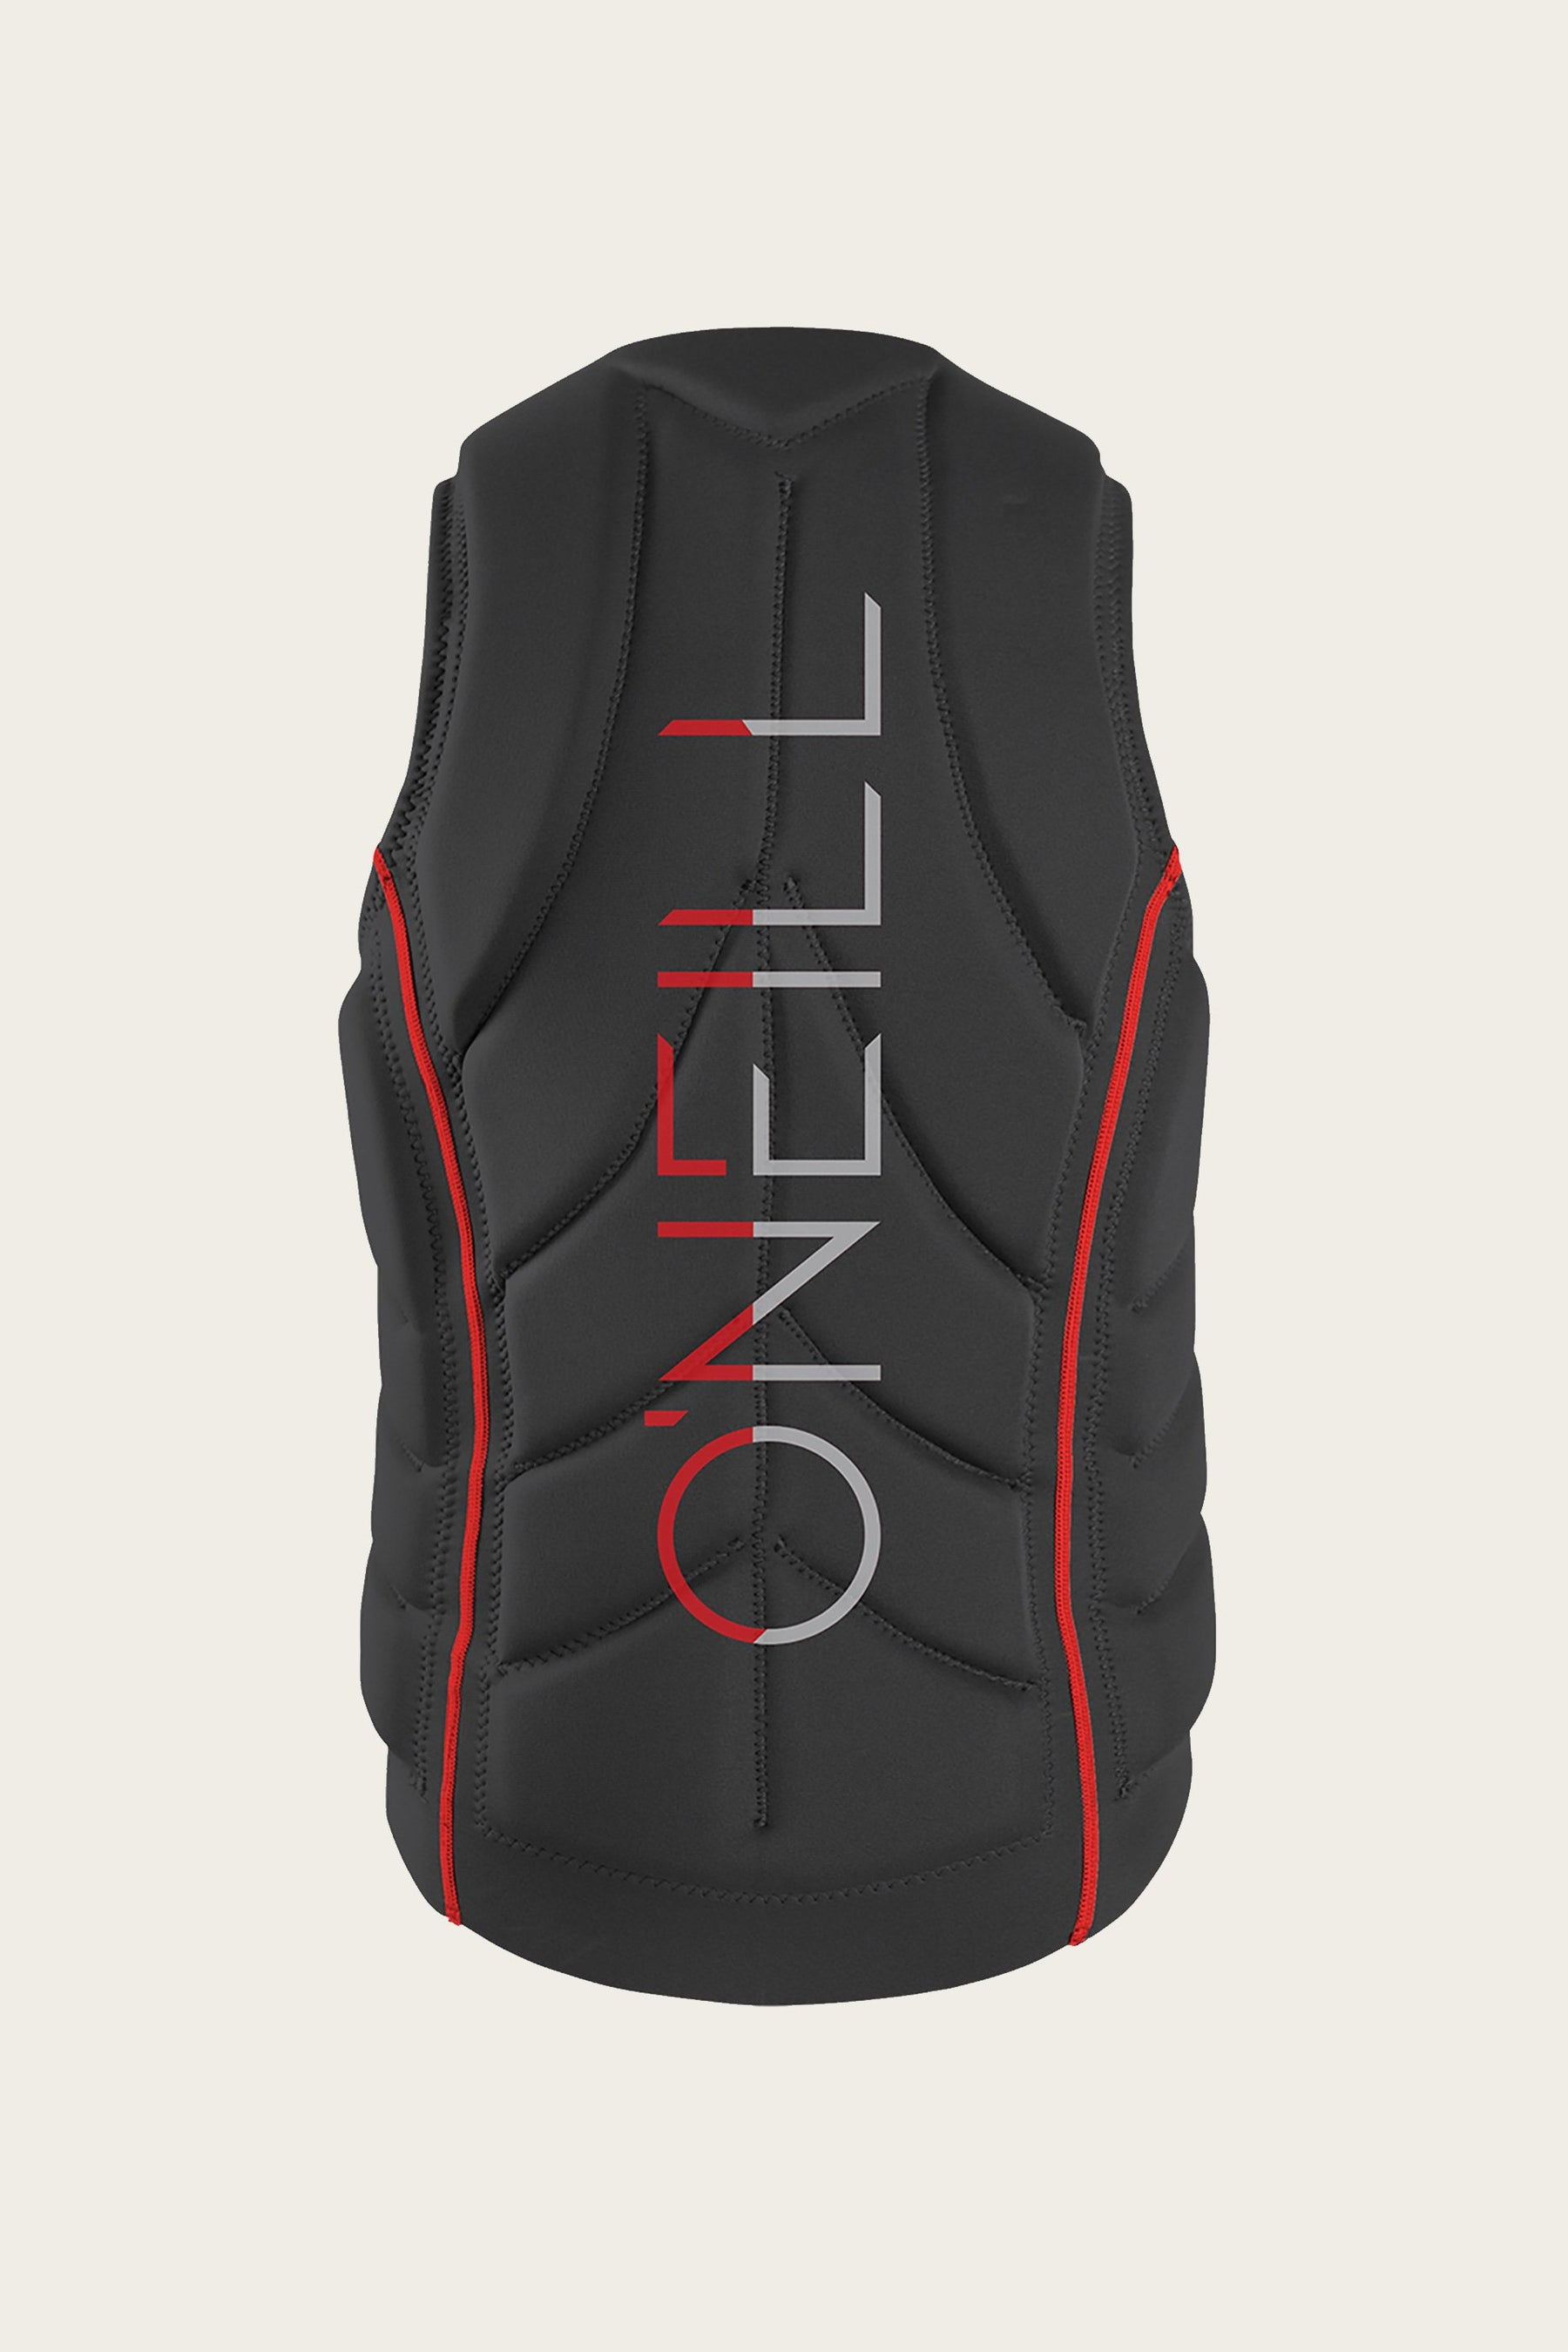 New O'neill Slasher Life Vests for Men and women